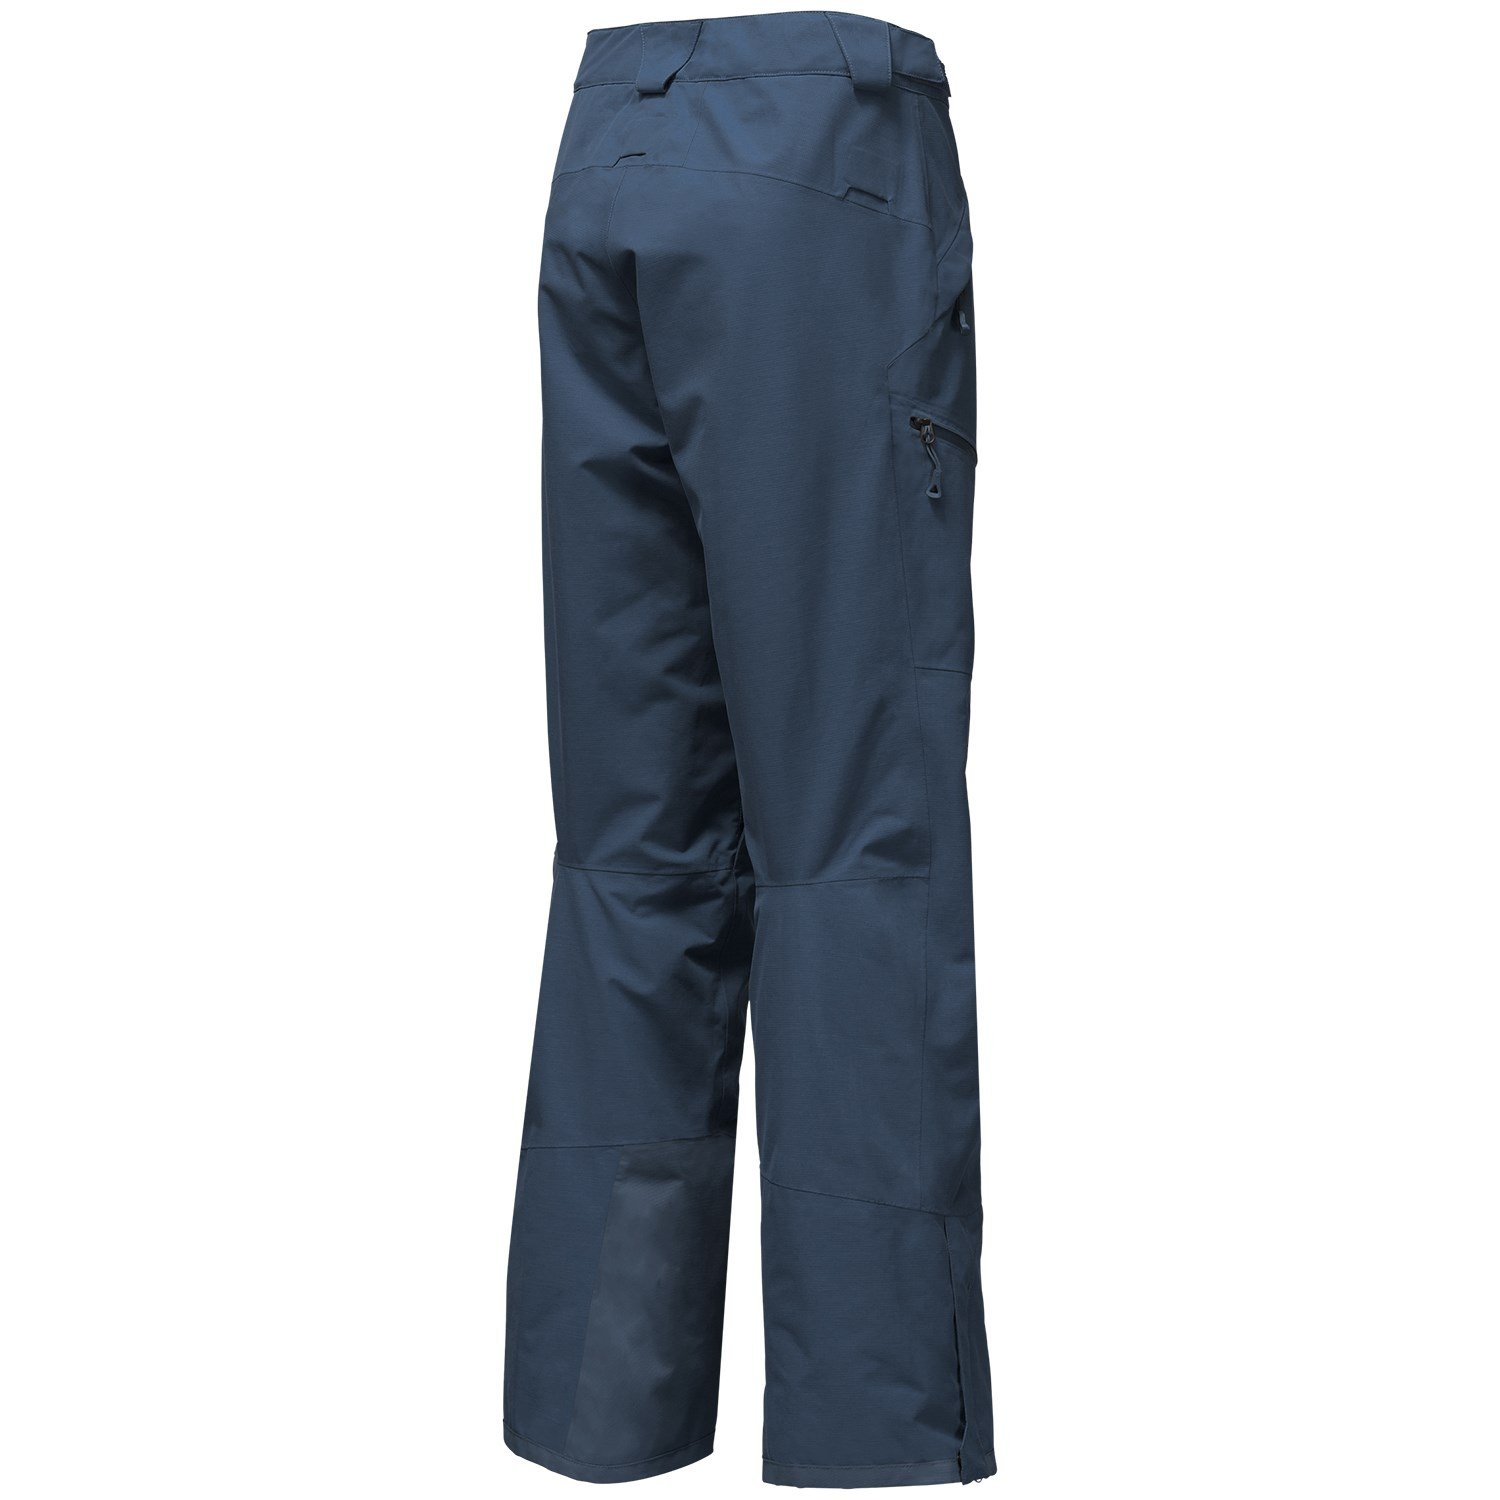 ad955999c The North Face NFZ Pants | evo